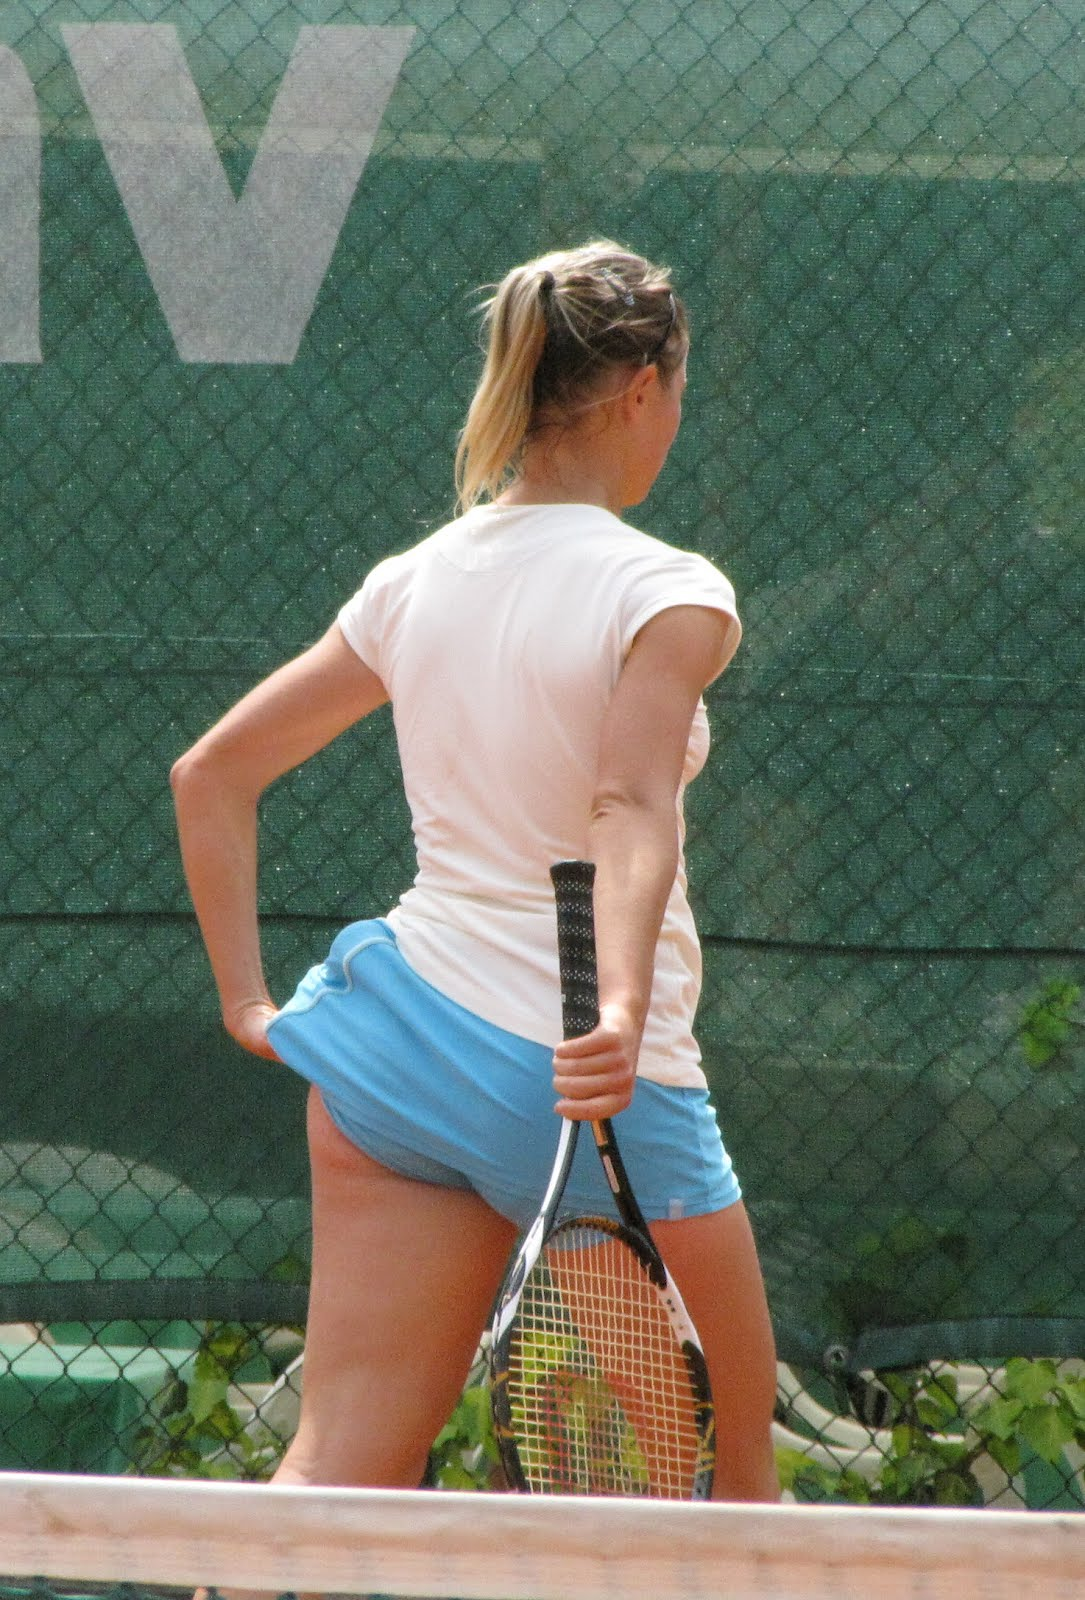 Hot Sabine Lisicki nude (93 photos), Ass, Leaked, Instagram, swimsuit 2015